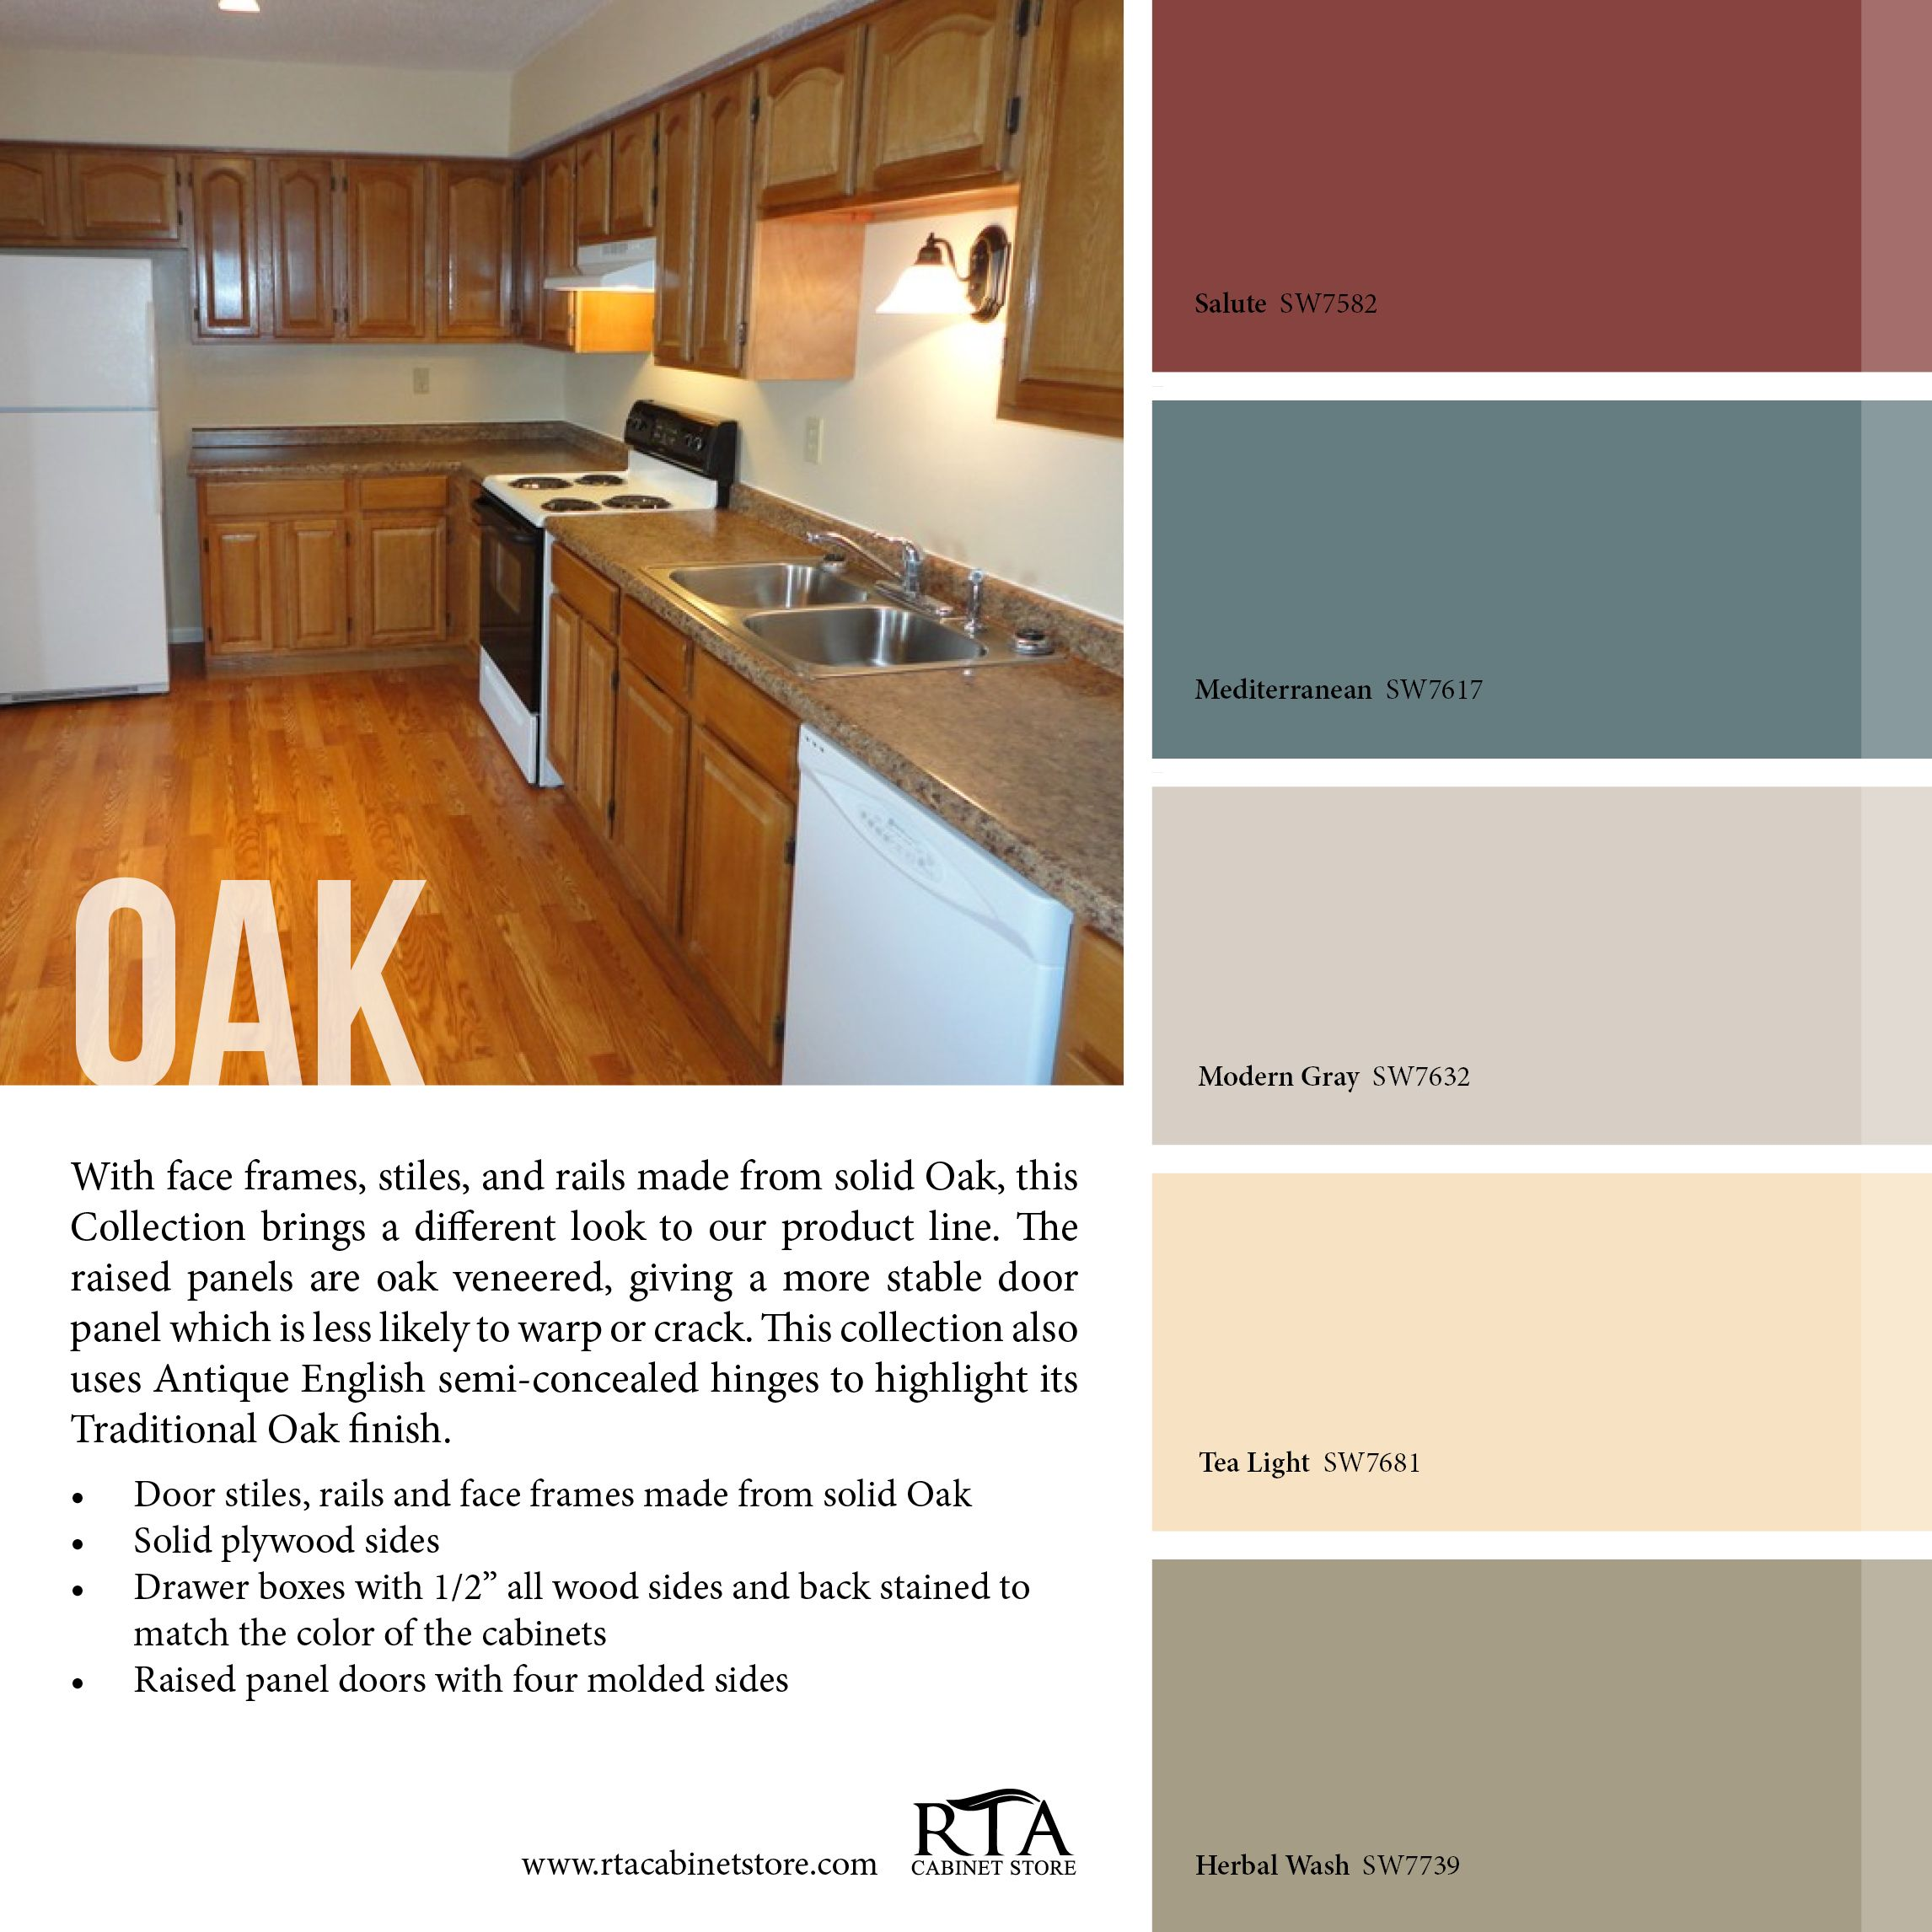 Kitchen Colors That Go With Oak Cabinets Color Palette To Go With Our Oak Kitchen Cabinet Line